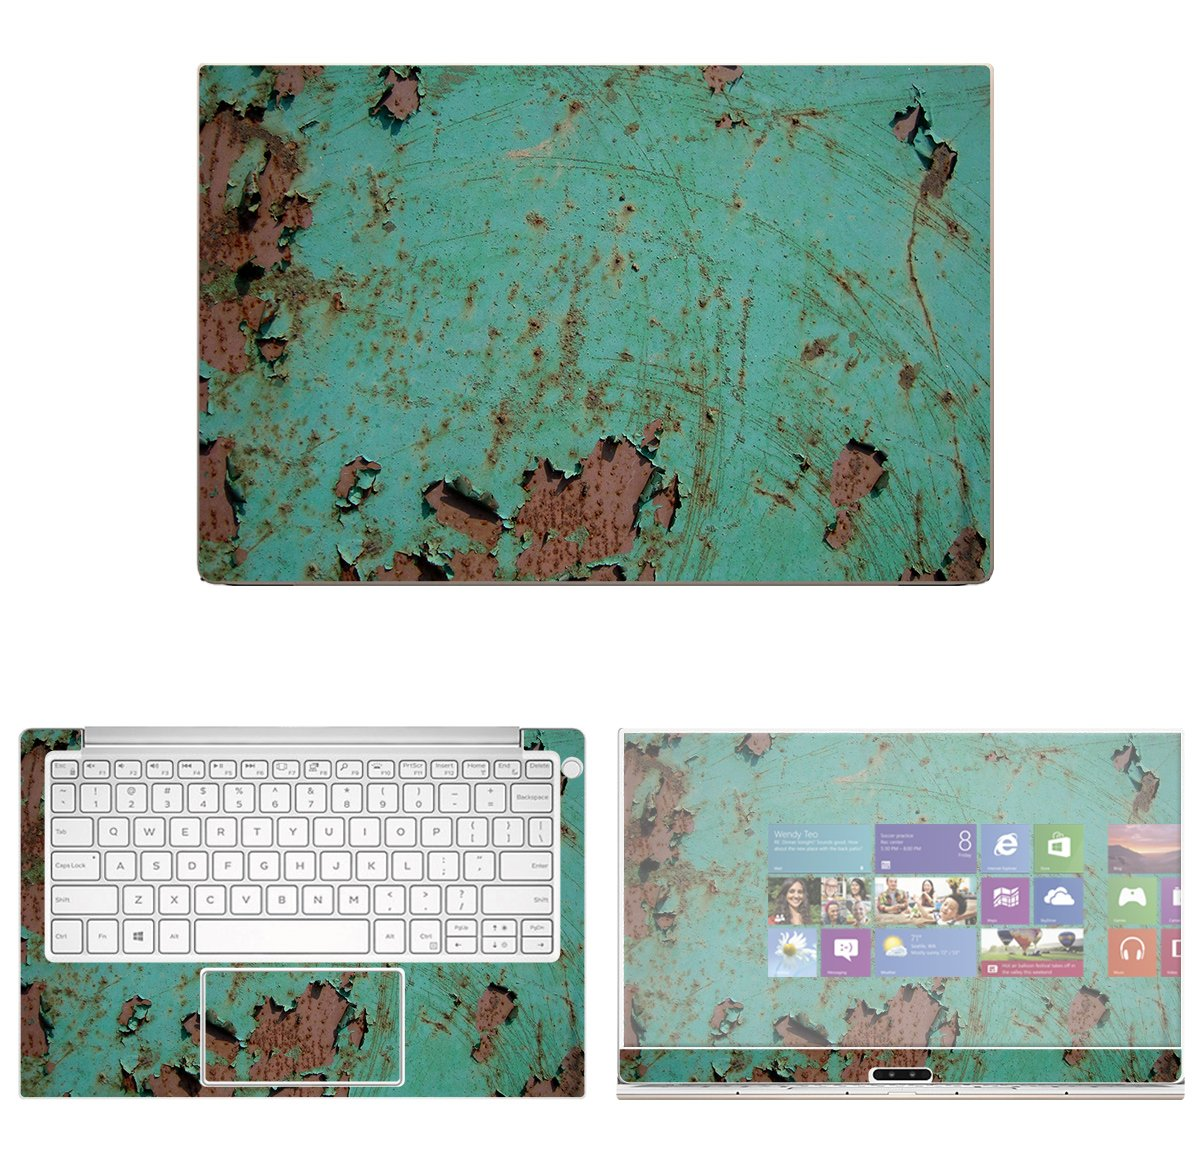 decalrus - Protective Decal Rust Skin Sticker for Dell XPS 13 9370 (13'' Screen) case Cover wrap DExps13_9370-111